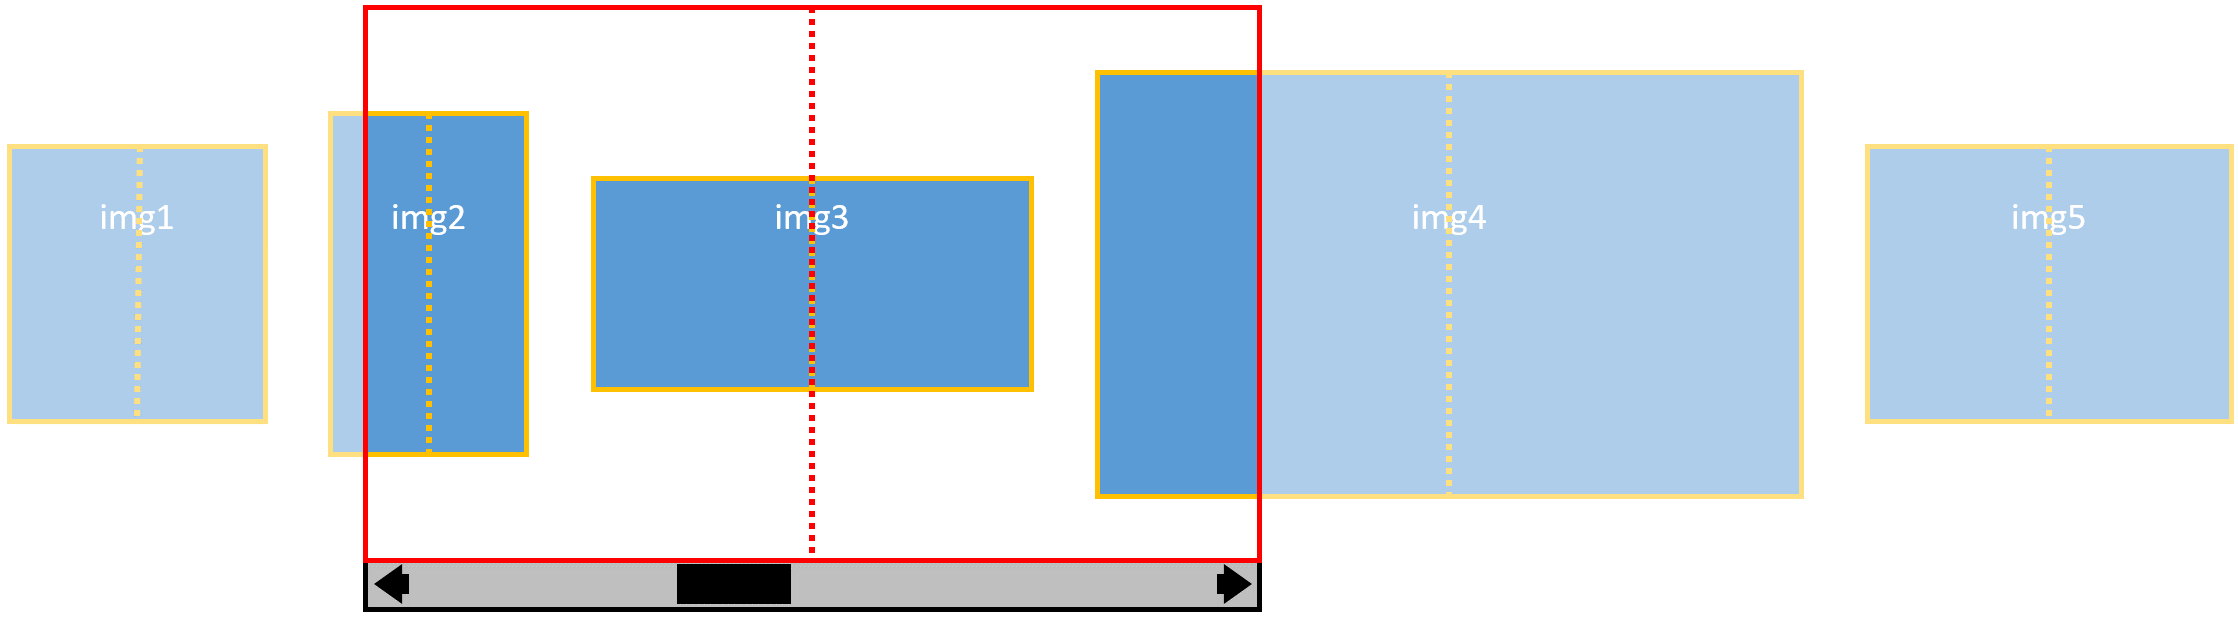 Snap positions and container